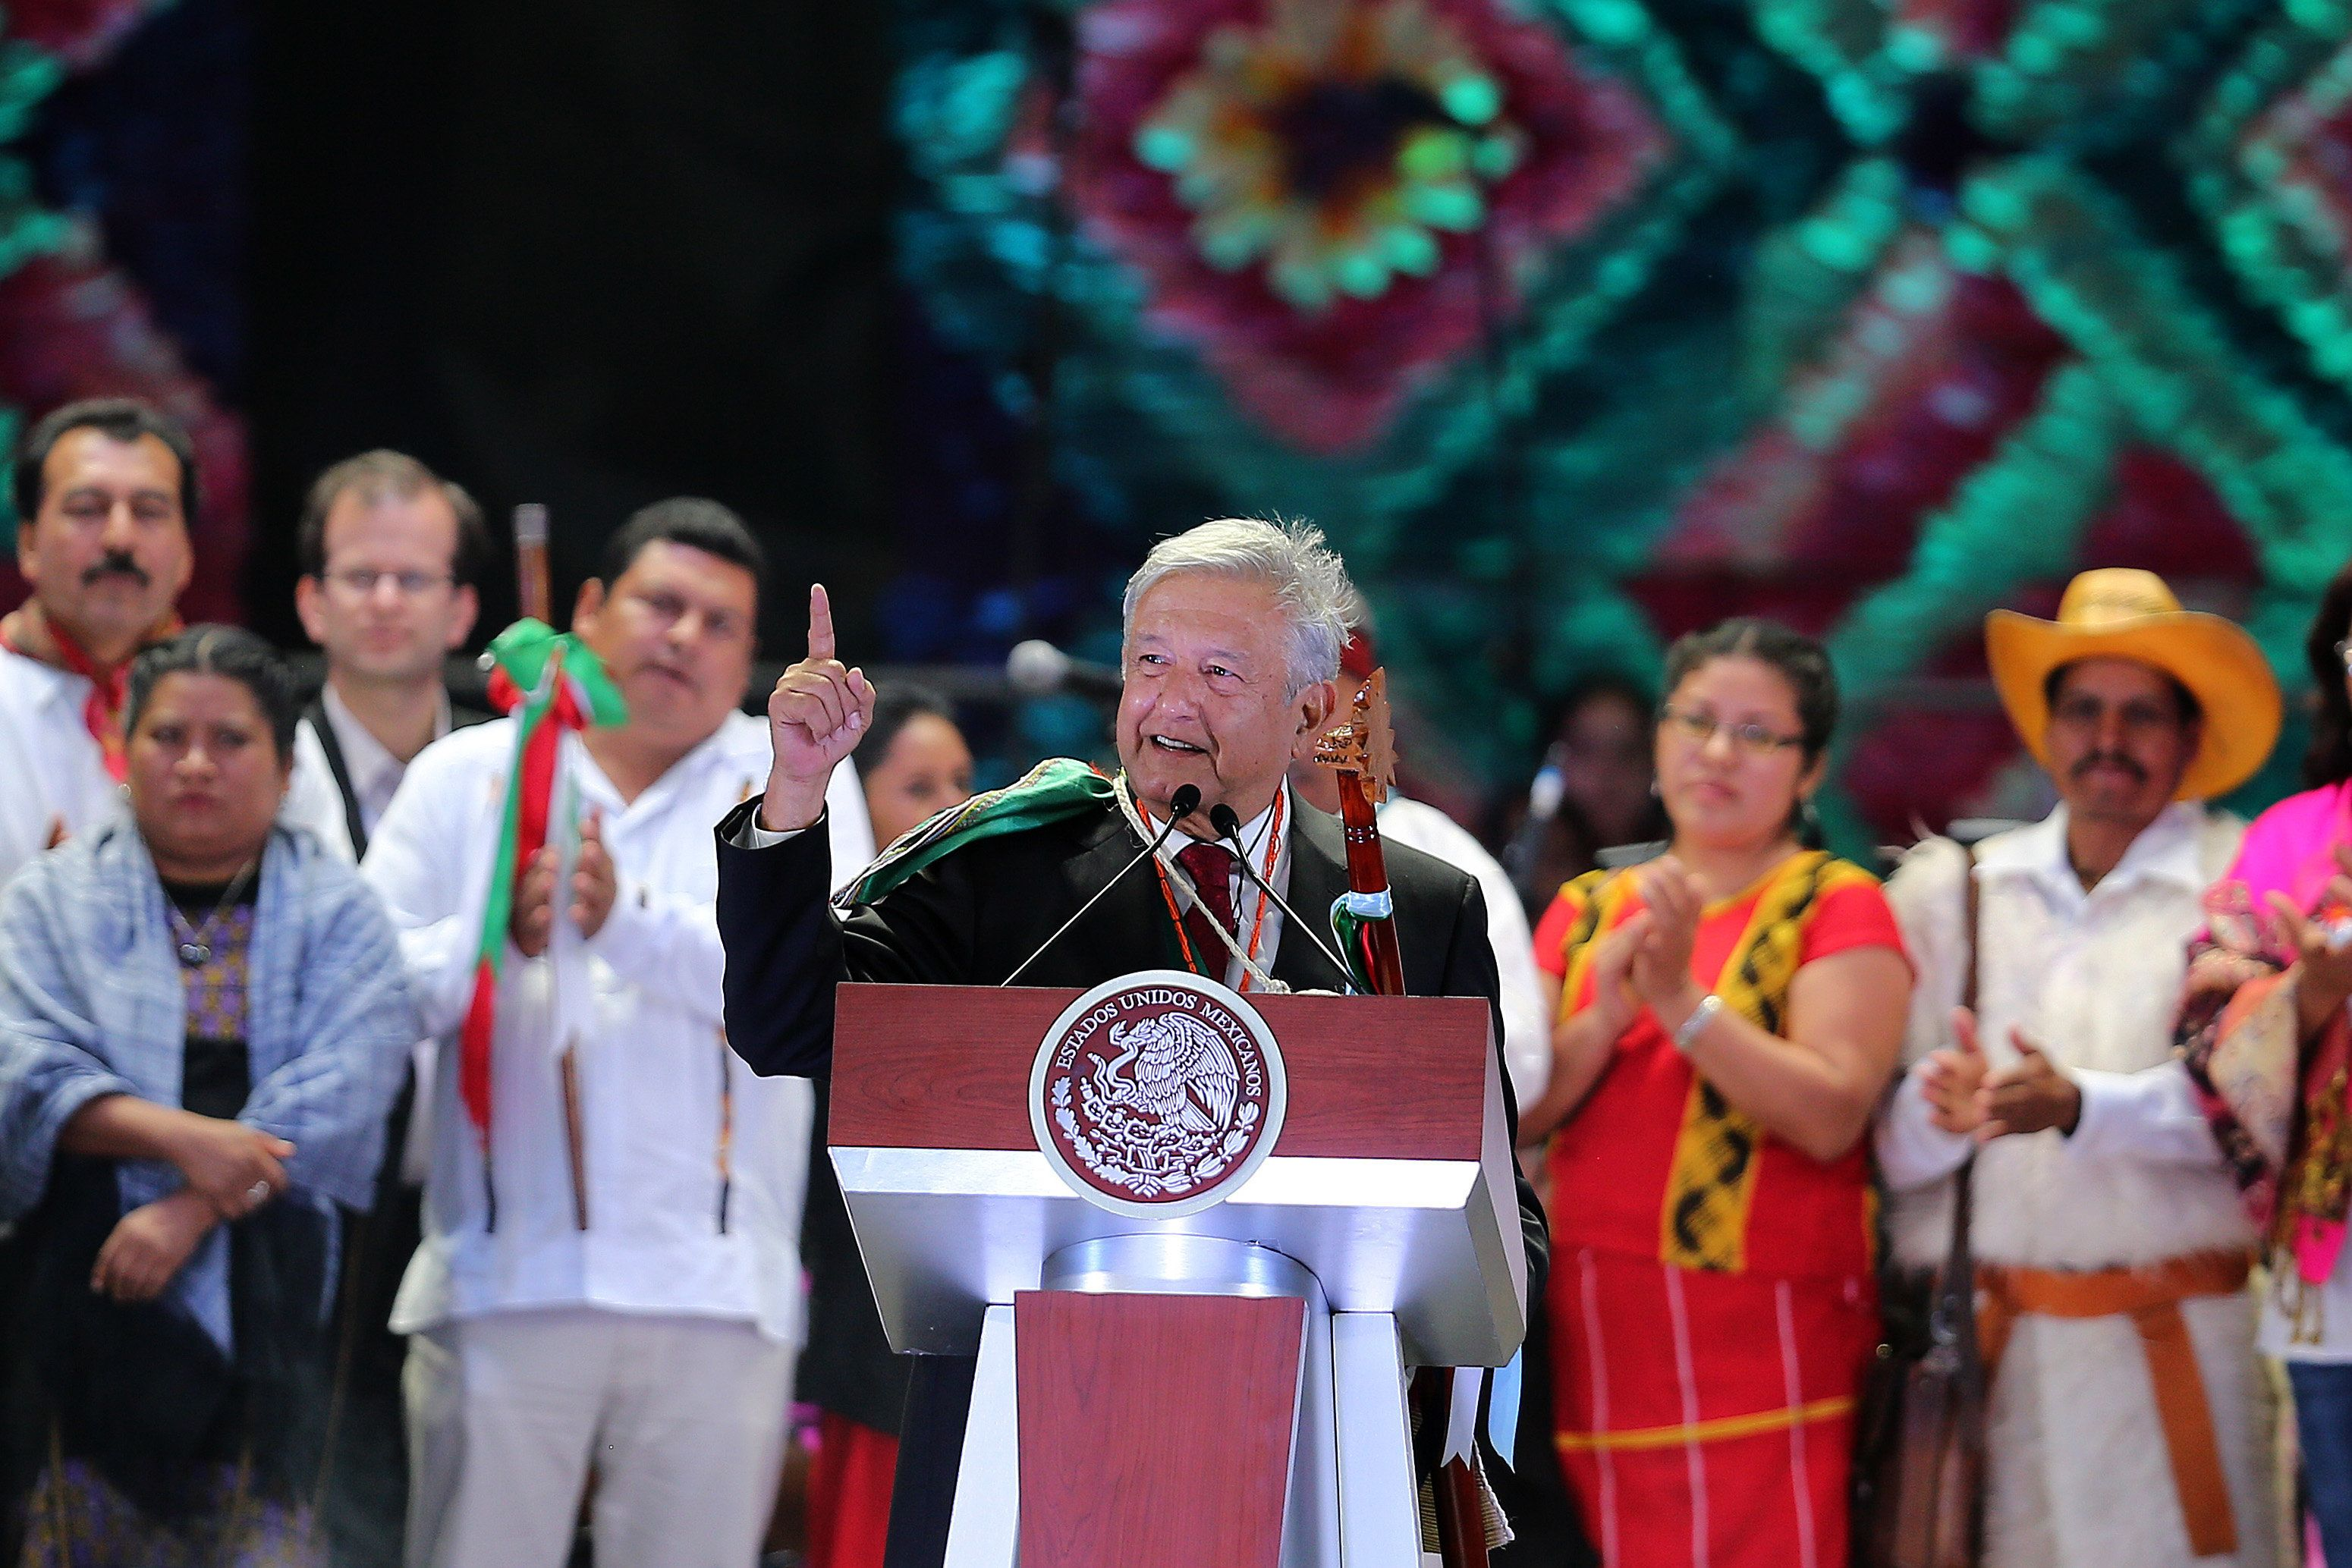 MEXICO CITY, MEXICO - DECEMBER 01: Andres Manuel Lopez Obrador, President of Mexico, gives a speech during the events of the Presidential Investiture as part of the 65th Mexico Presidential Inauguration at Zocalo on December 01, 2018 in Mexico City, Mexico. (Photo by Manuel Velasquez/Getty Images)